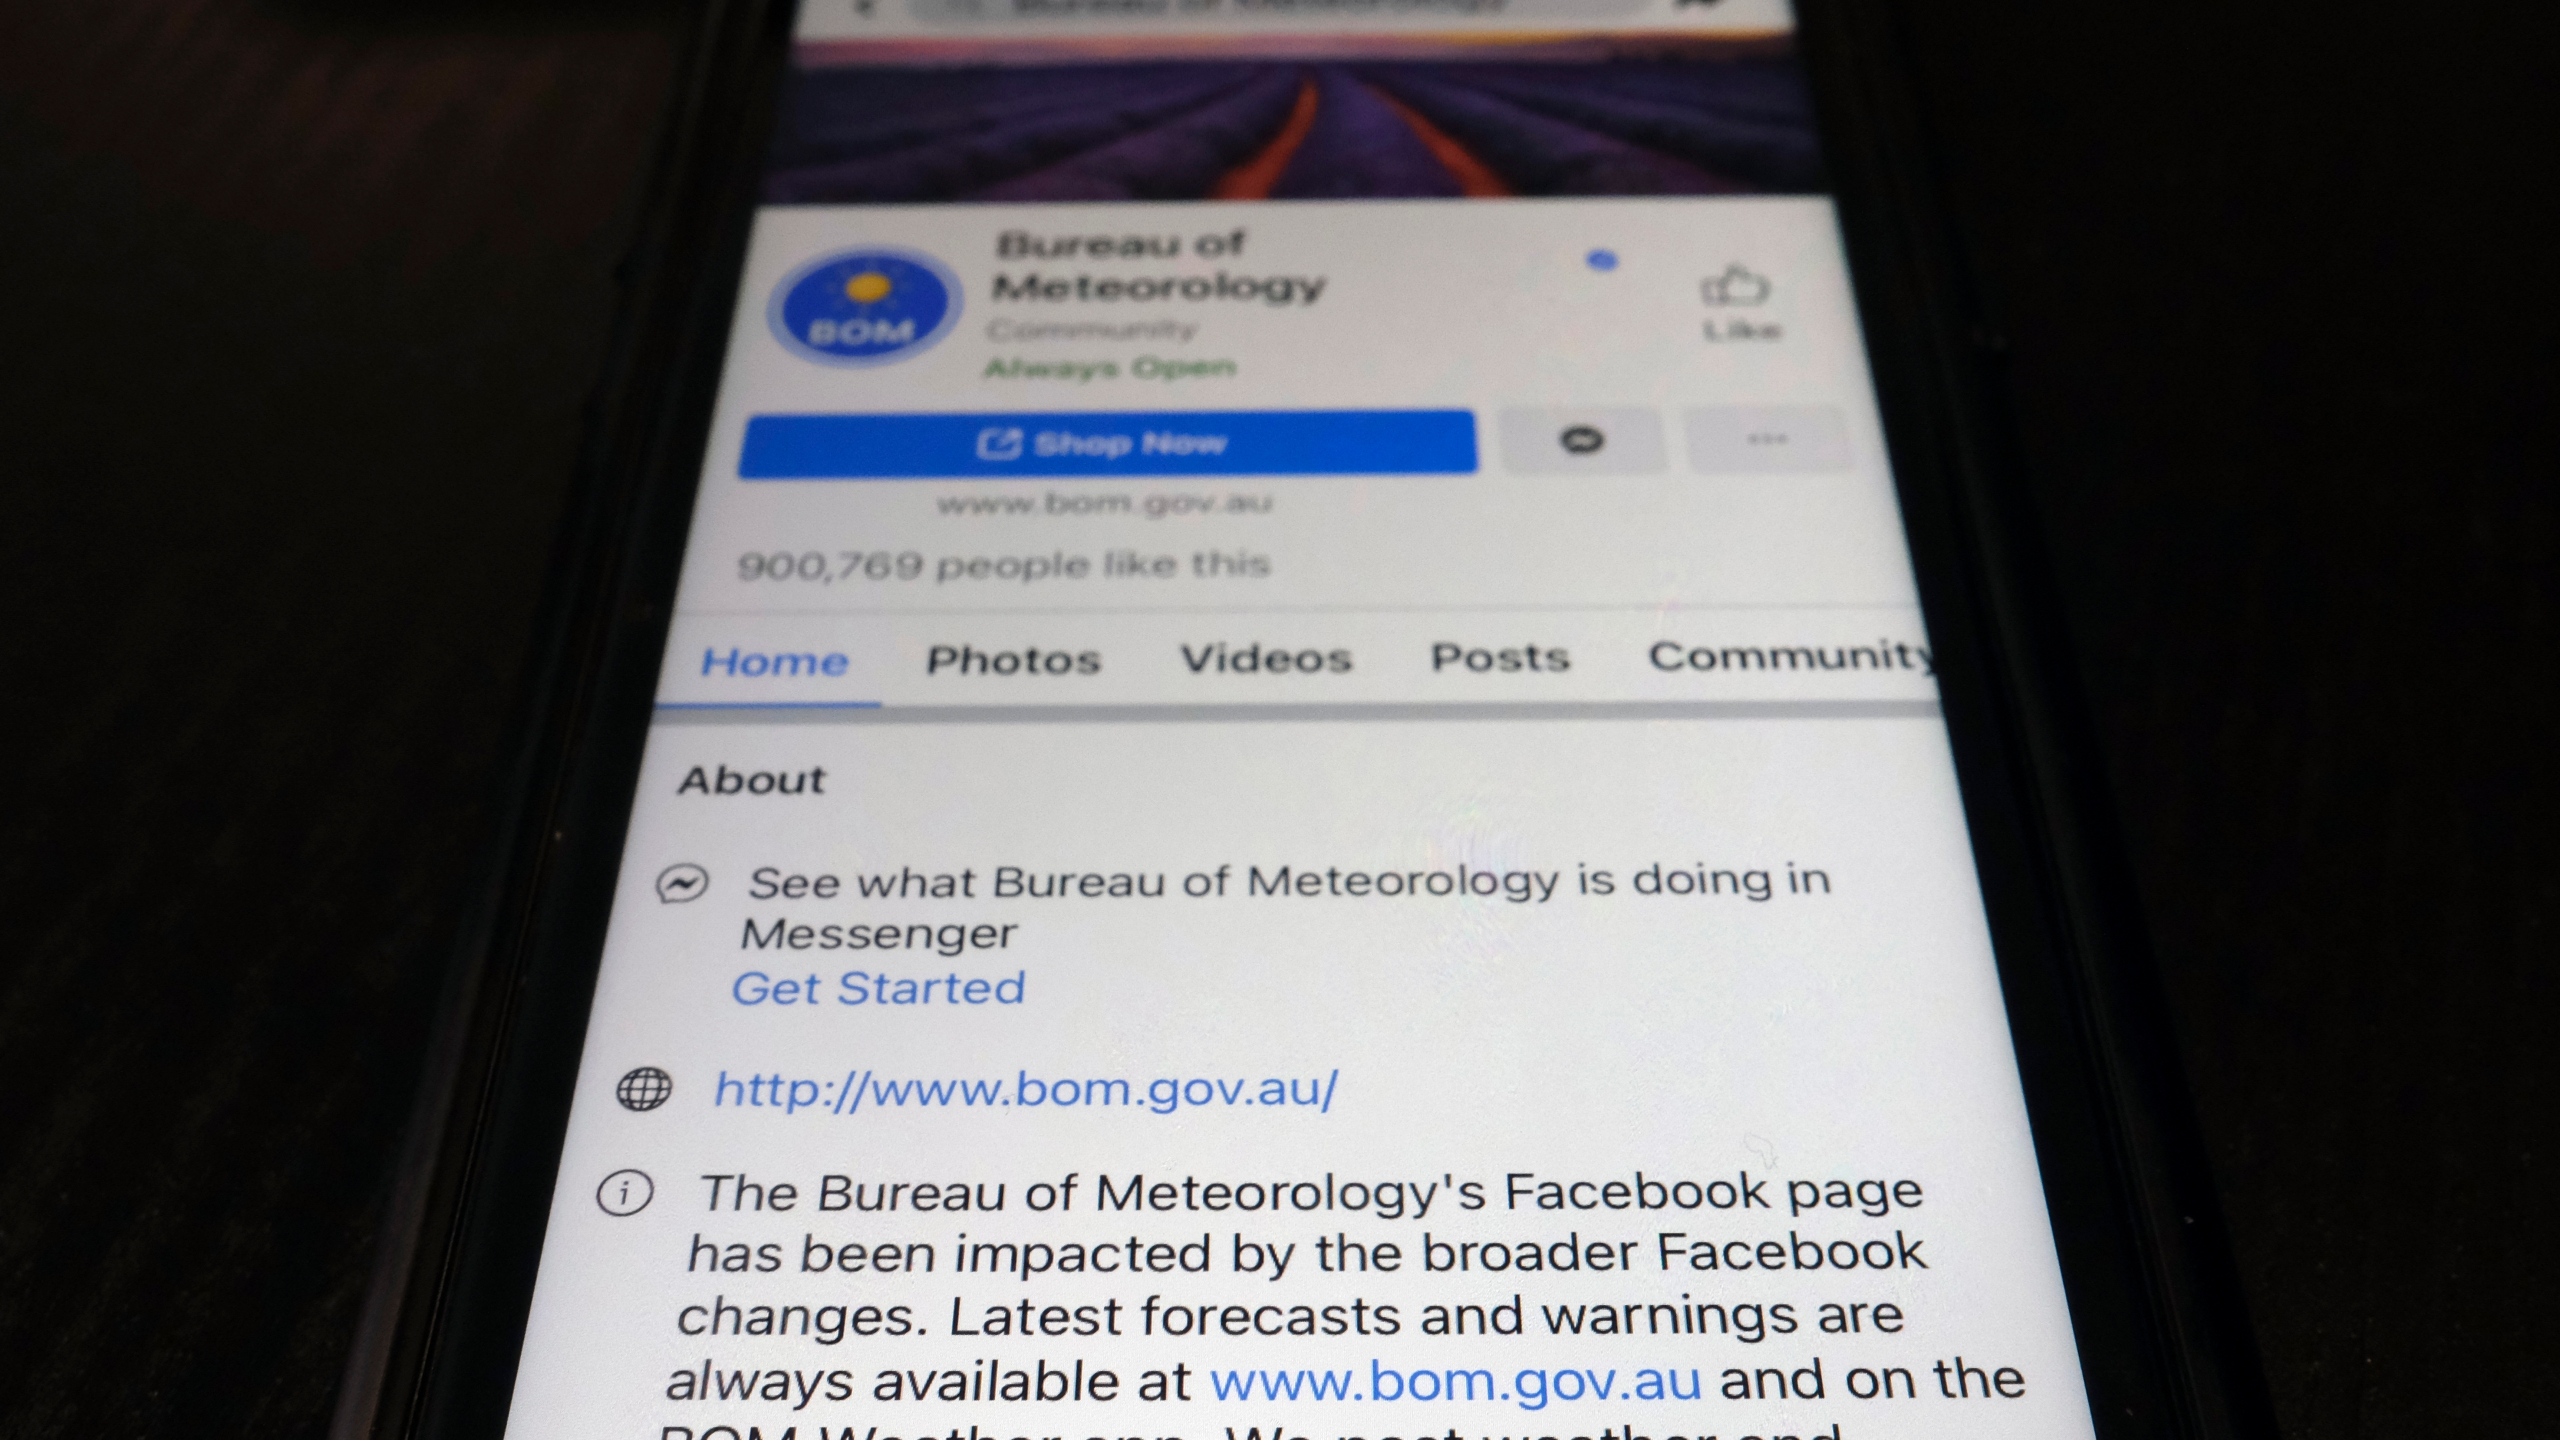 A disclaimer is shown on the bottom of Australia's Bureau of Meteorology page on the Facebook app Thursday, Feb. 18, 2021, in Tokyo. Australia's government has condemned Facebook over its shock move to prevent Australians sharing news that had also blocked some government communications. The Bureau of Meteorology's weather warnings, a Hobart women's shelter and the Betoota Advocate, a satirical website named after an Australian ghost town, were among those surprised to find their content blocked at least temporarily. (AP Photo/Kiichiro Sato)